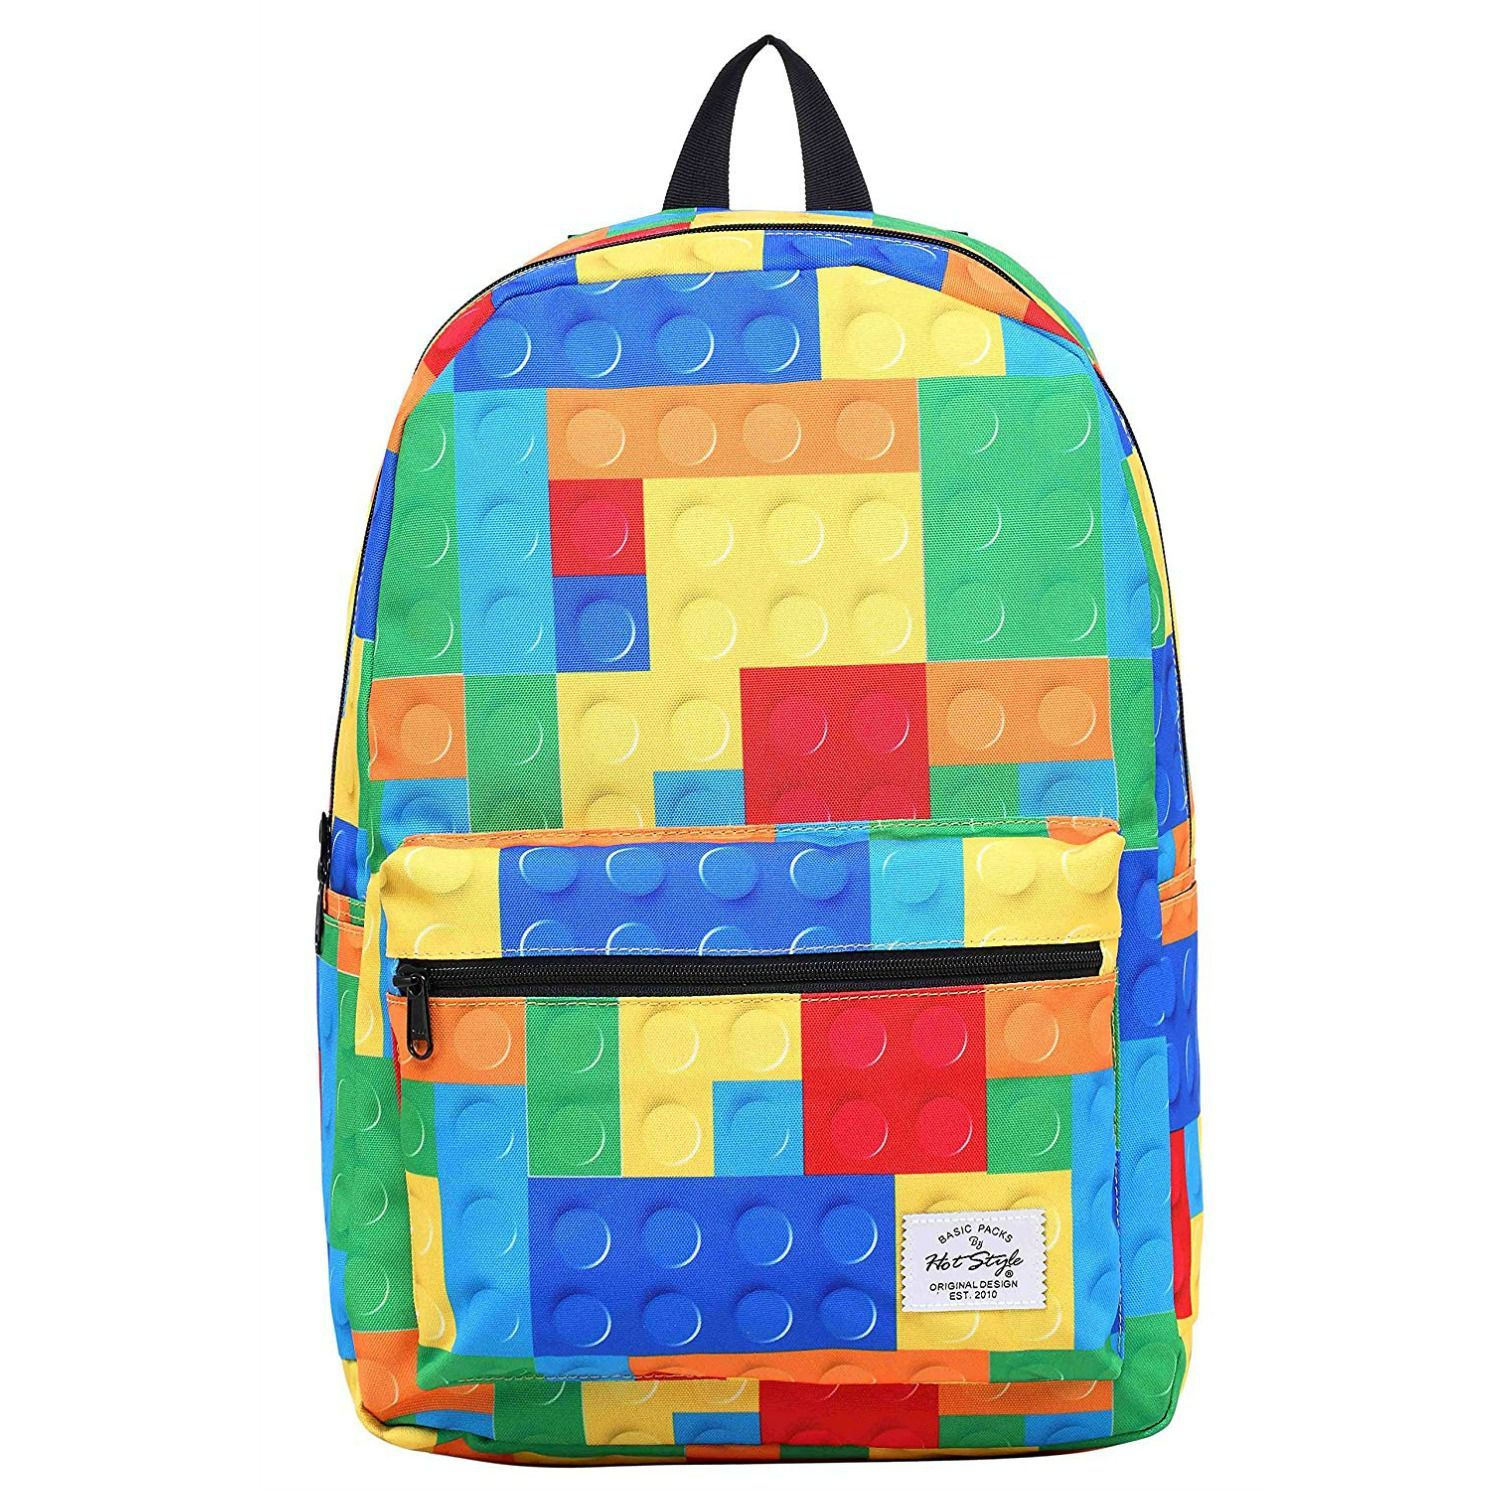 0a874fd565486 16 Best Backpacks for Kids in 2019 - Cool Kids Backpacks   Book Bags